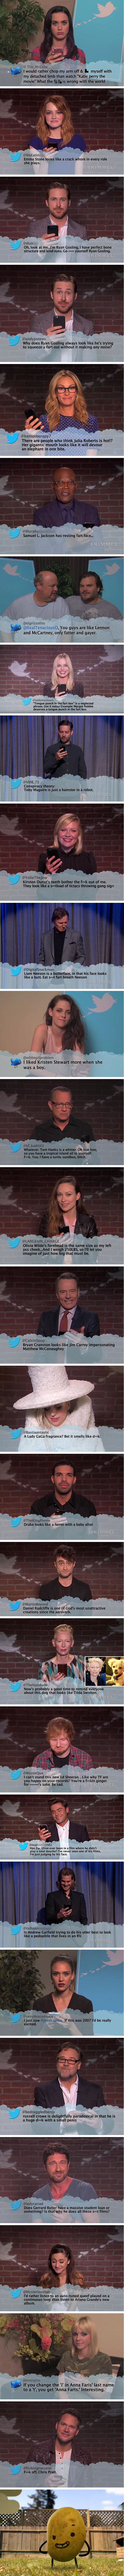 28 Celebs getting torched on Twitter is pure bliss